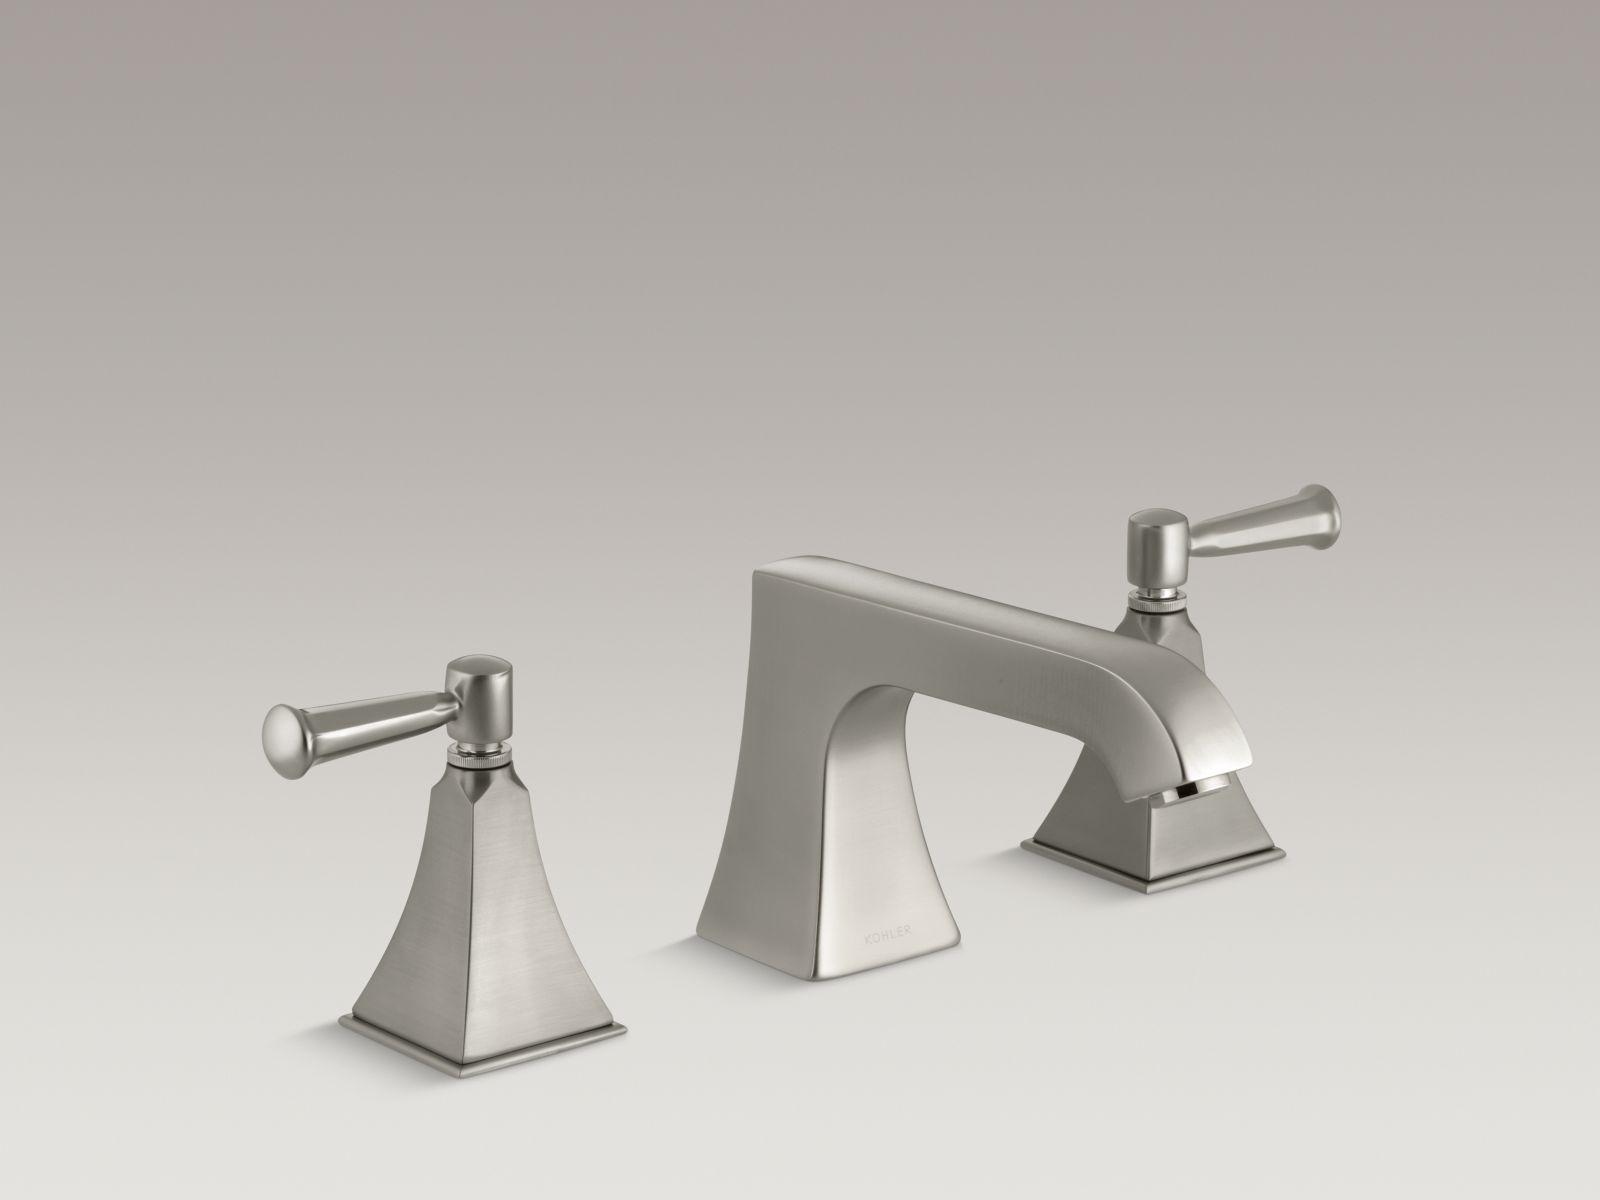 Ideas, standard plumbing supply category results for bathroom faucet intended for size 1600 x 1200  .